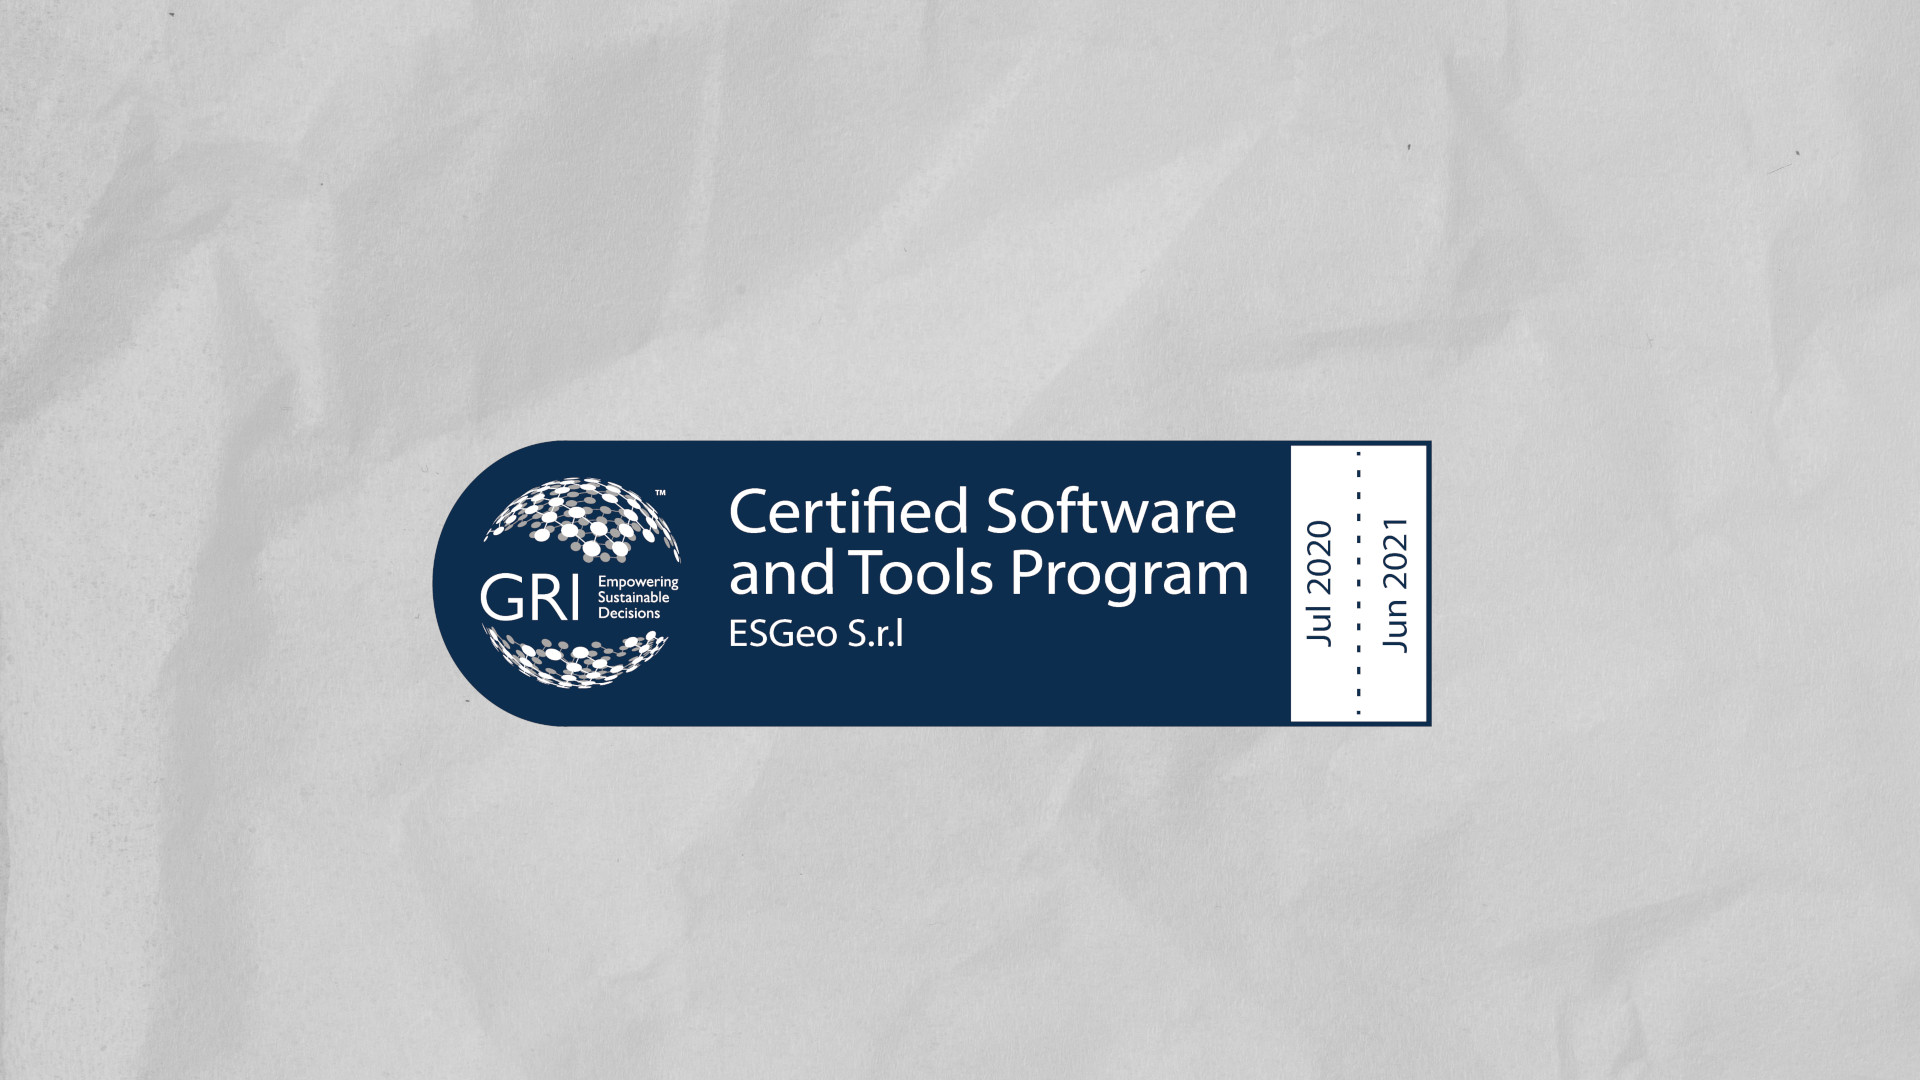 ESGeo is a GRI Certified Software